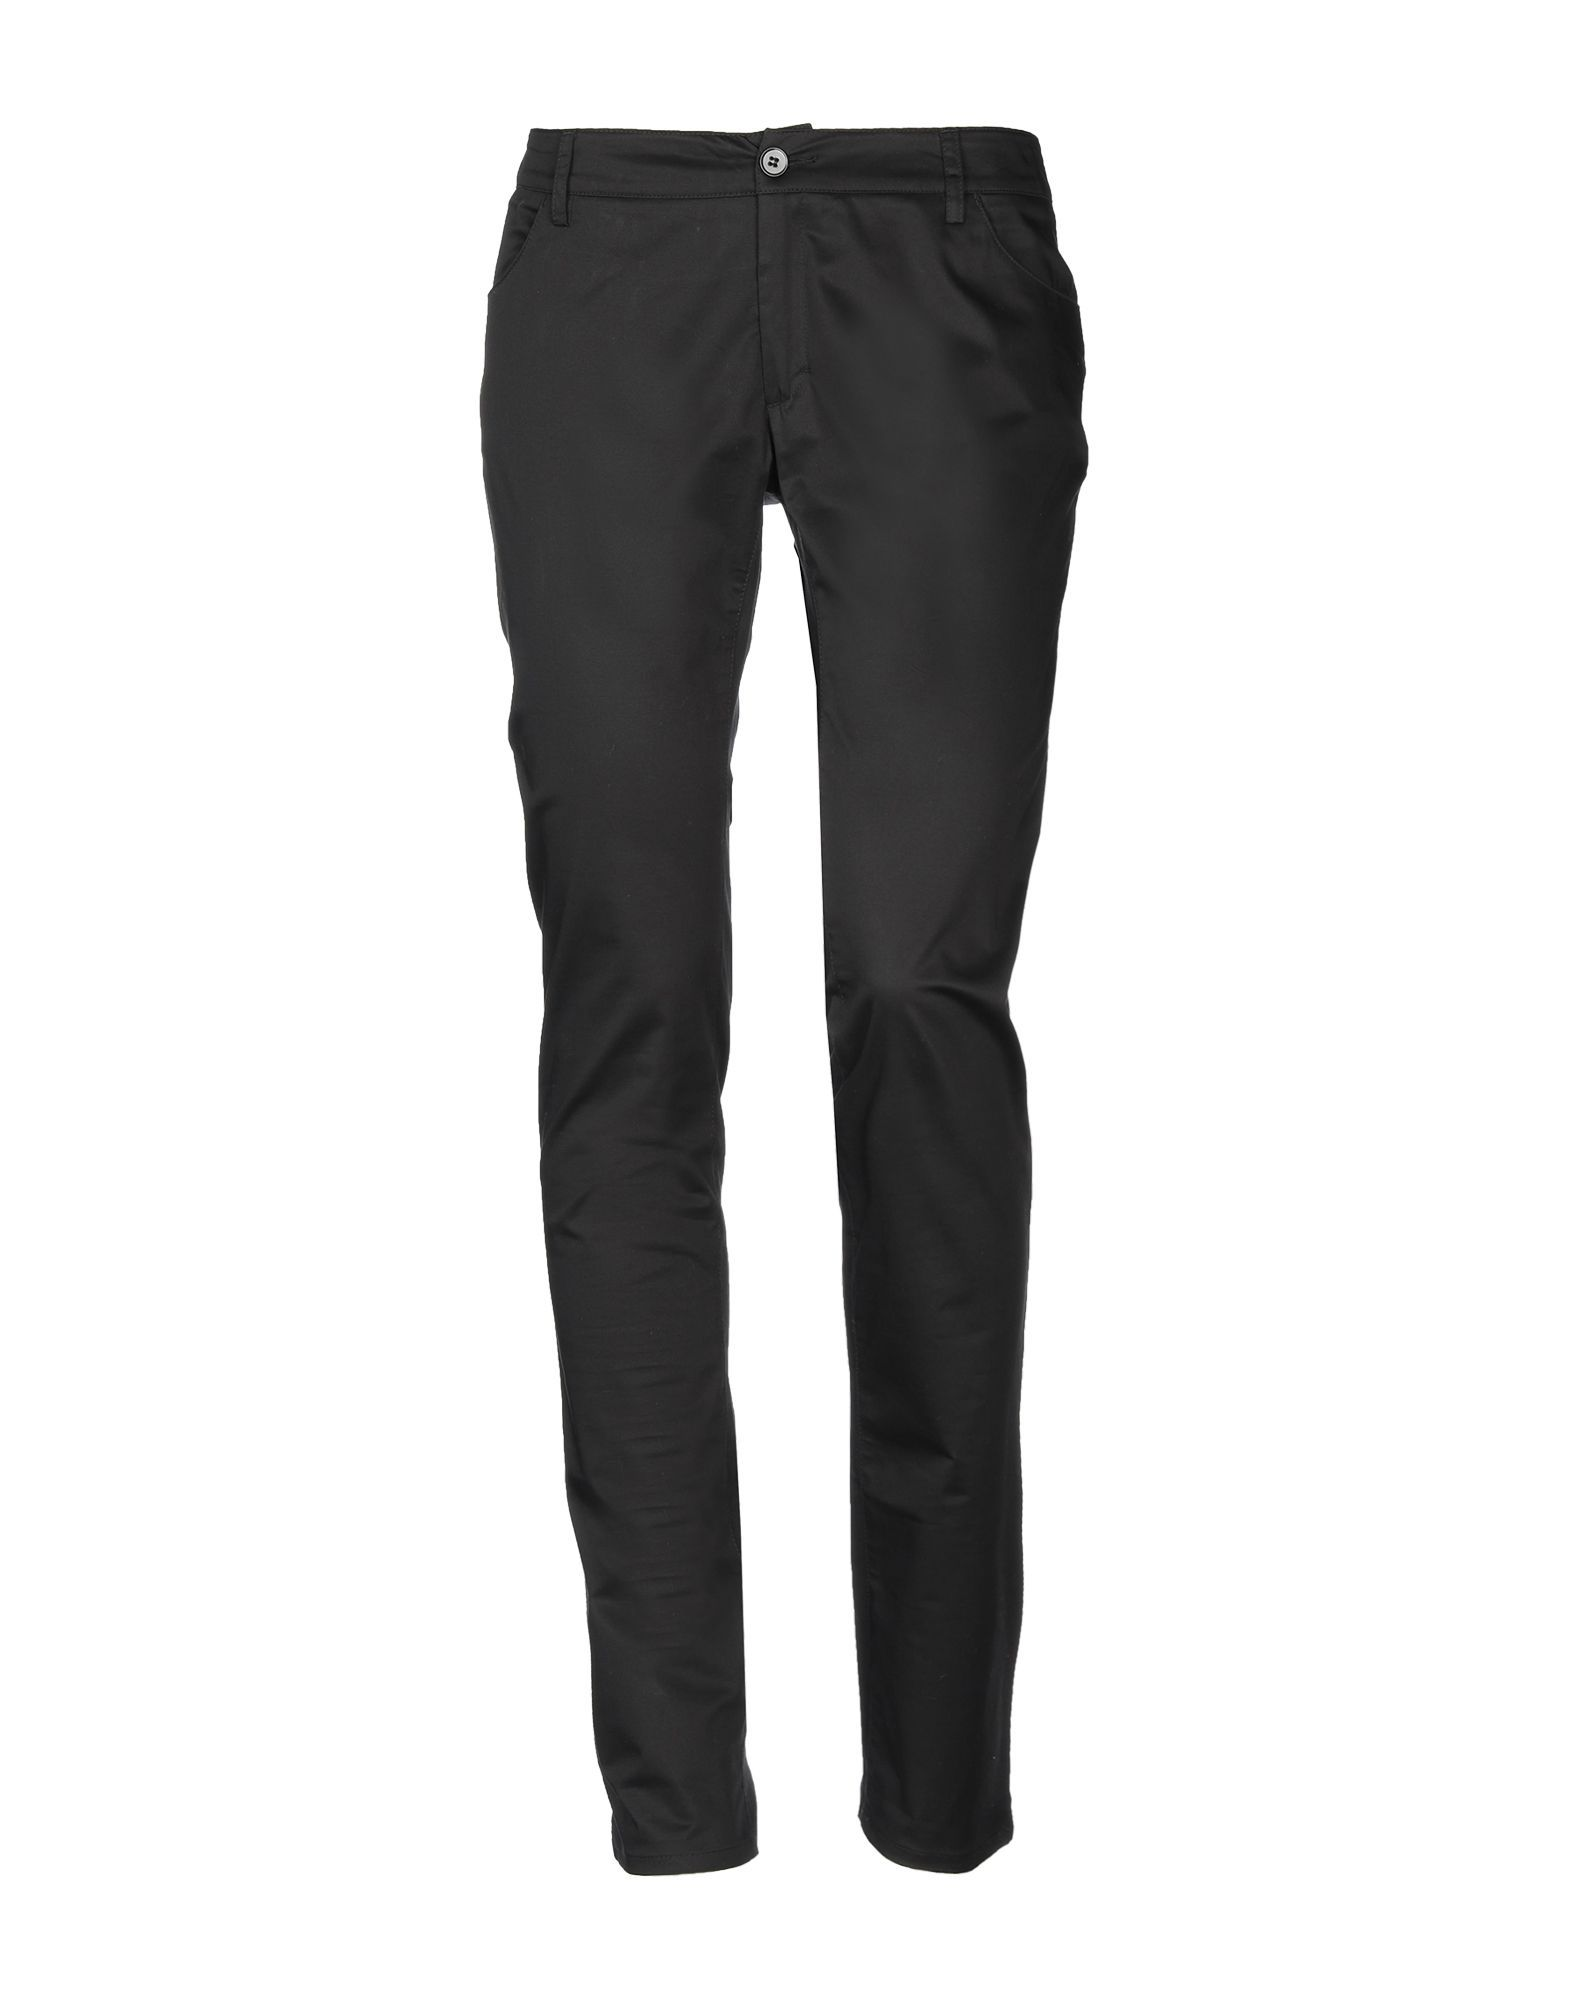 Calvin Klein Black Cotton Trousers